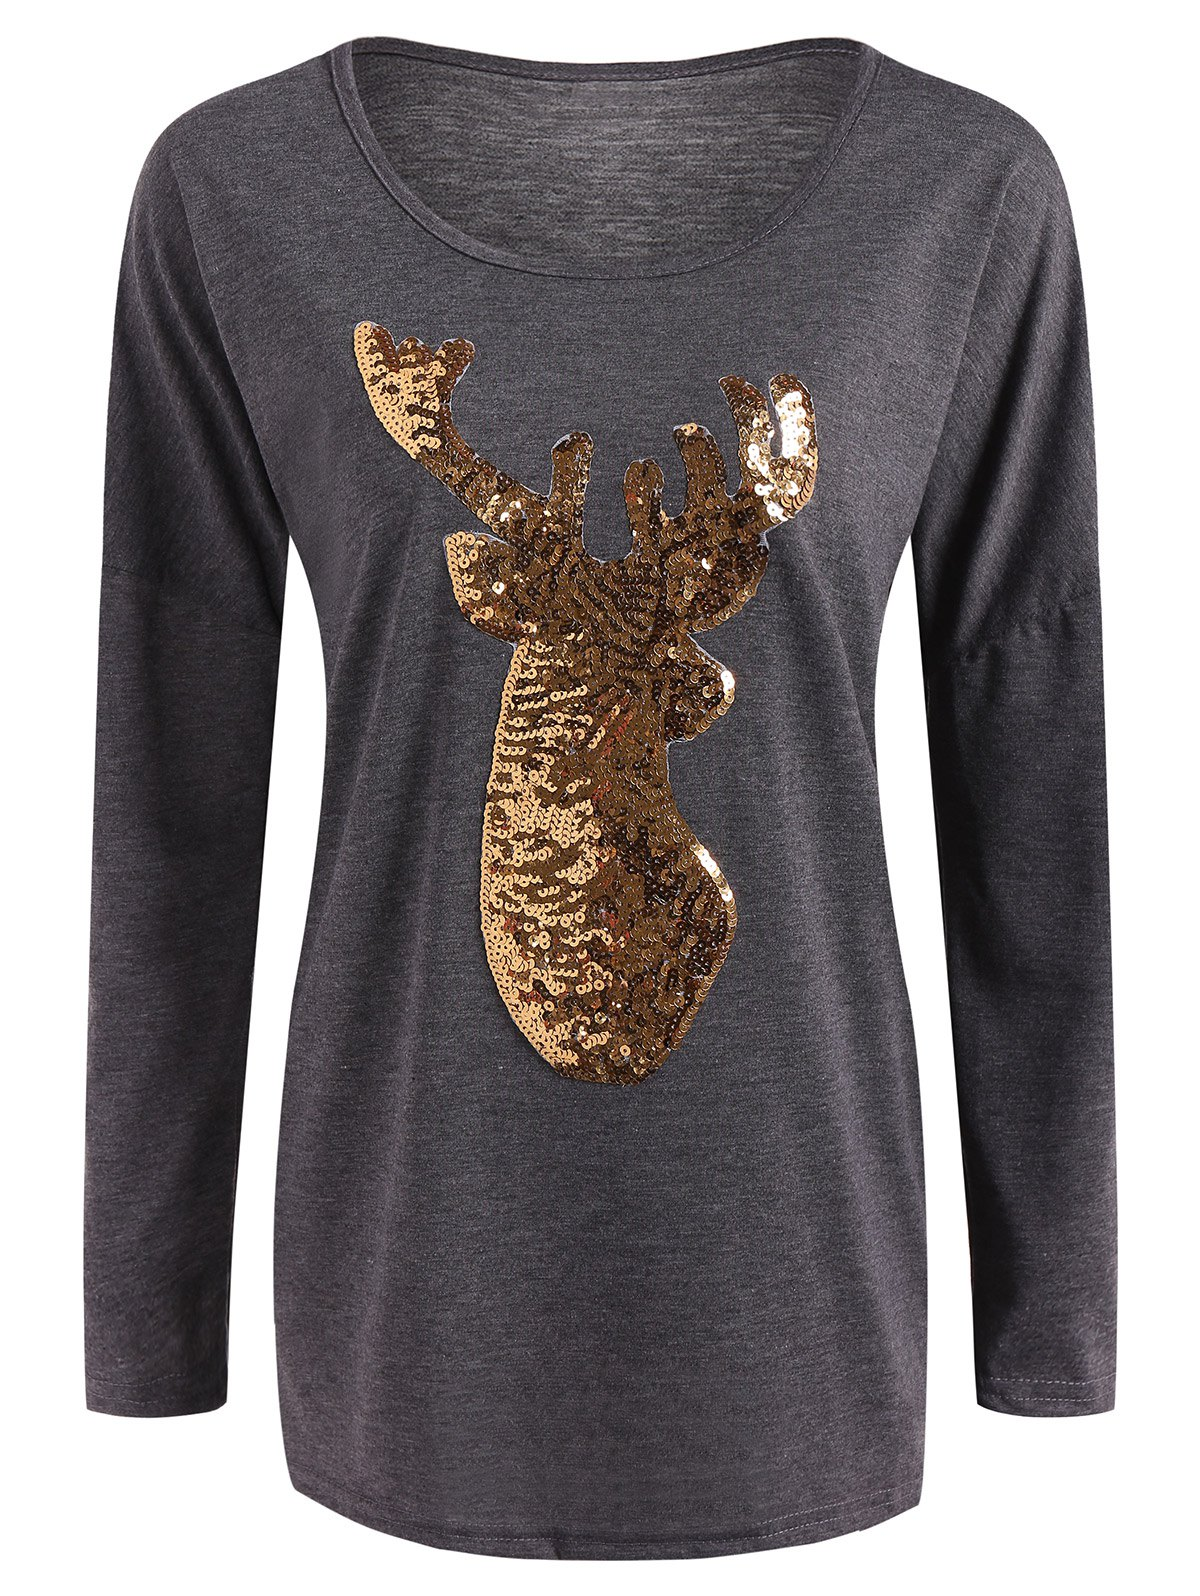 bf5ac91c54555 55% OFF   2019 Christmas Reindeer Sequin Long Sleeve T-shirt ...